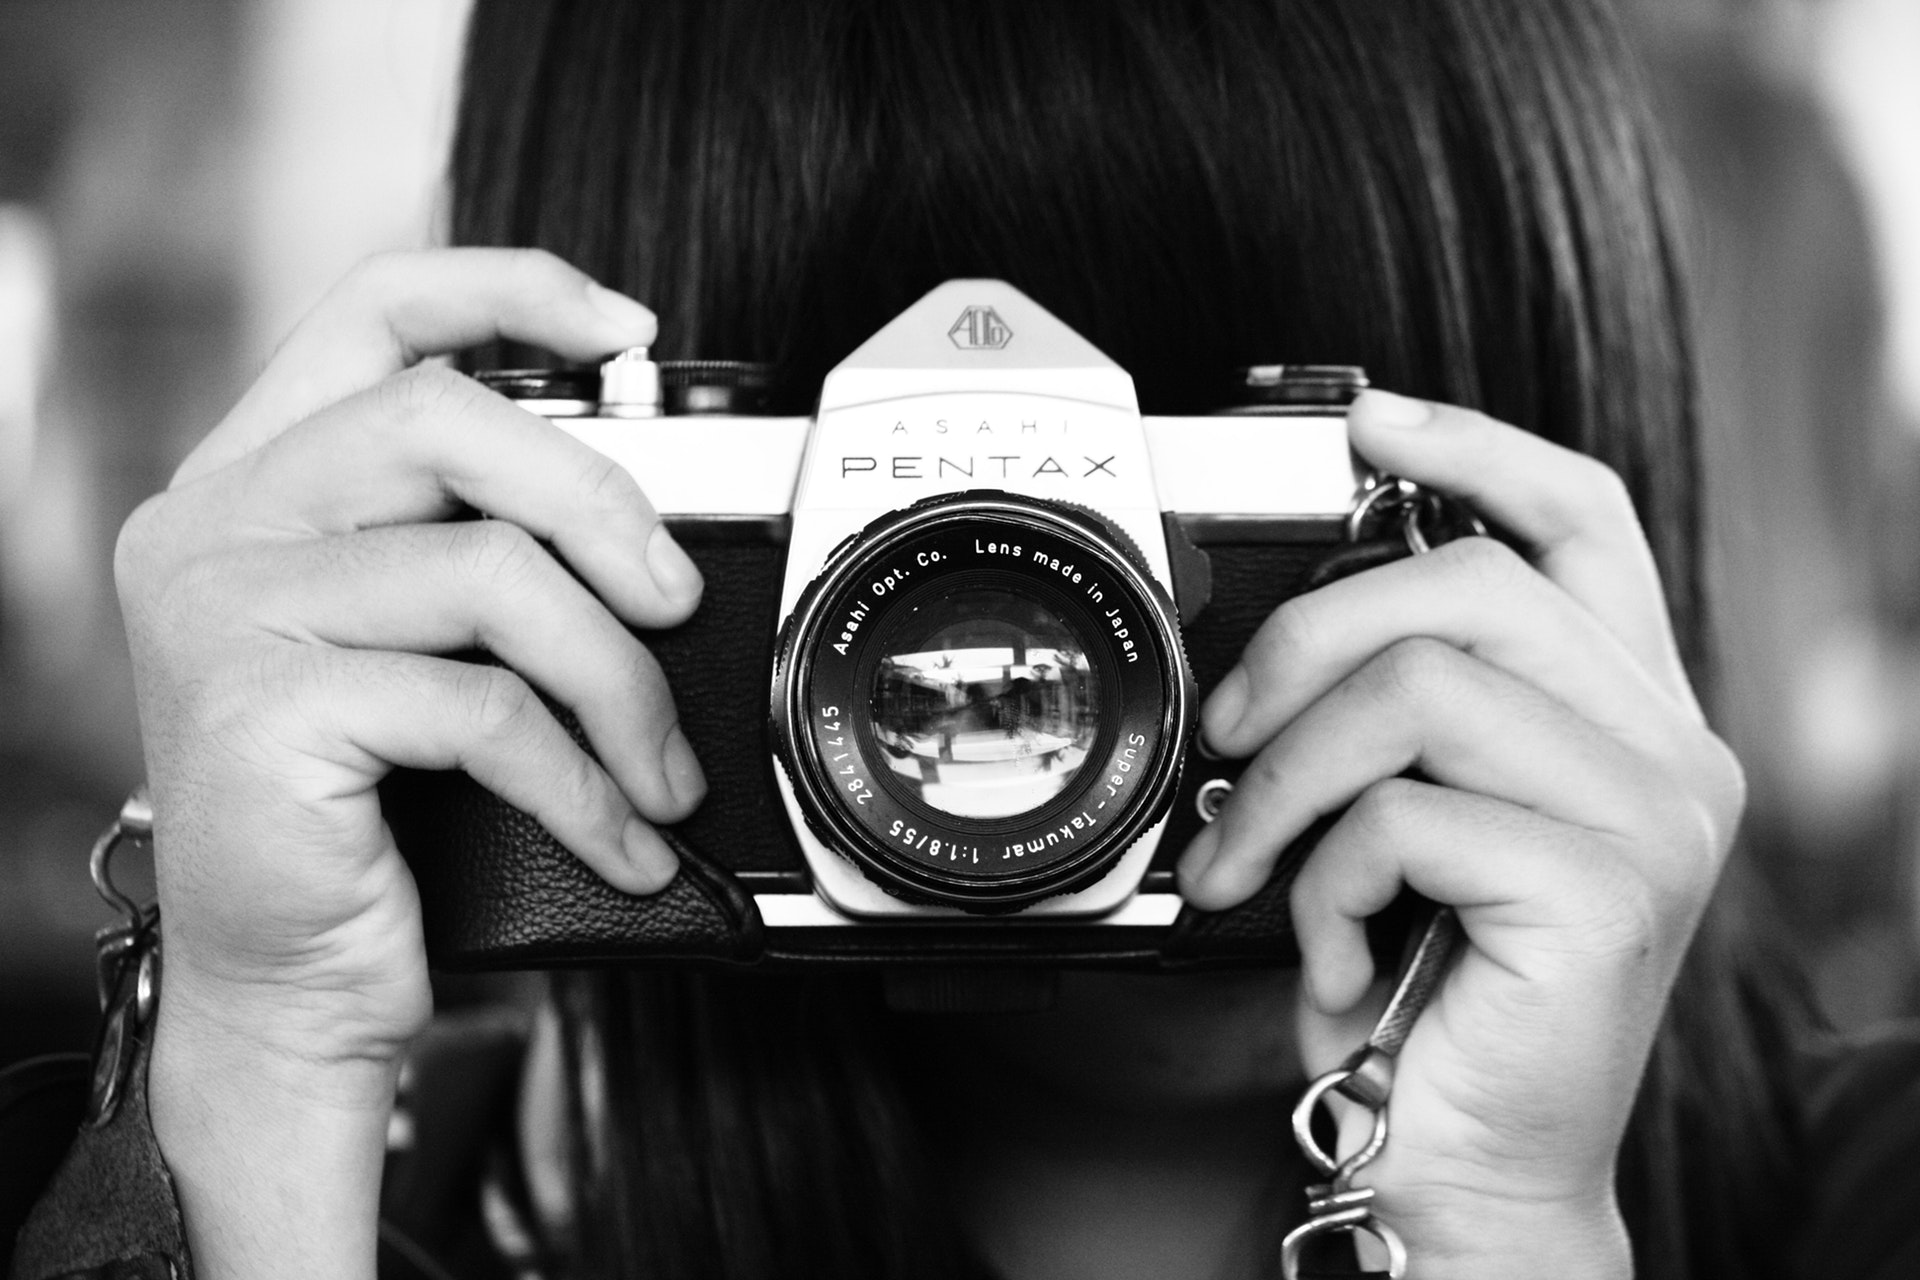 woman-holding-dslr-camera-in-grayscale-photography-707018